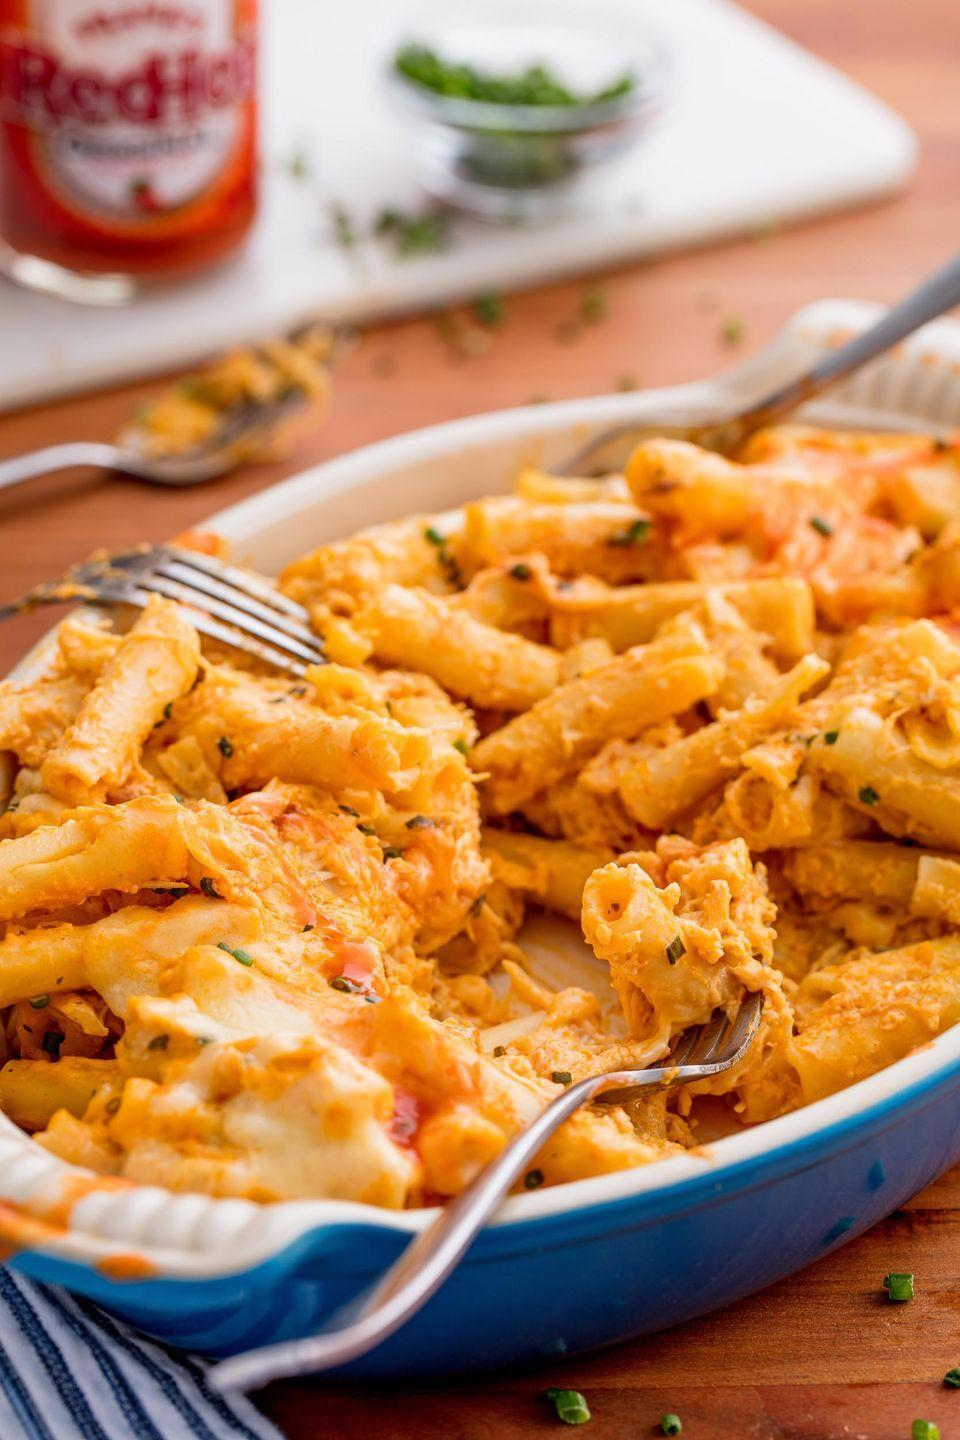 """<p>Buffalo is the pasta sauce you never knew you needed.</p><p>Get the recipe from <a href=""""https://www.delish.com/cooking/recipe-ideas/recipes/a49748/buffalo-baked-ziti-recipe/"""" rel=""""nofollow noopener"""" target=""""_blank"""" data-ylk=""""slk:Delish"""" class=""""link rapid-noclick-resp"""">Delish</a>.</p>"""